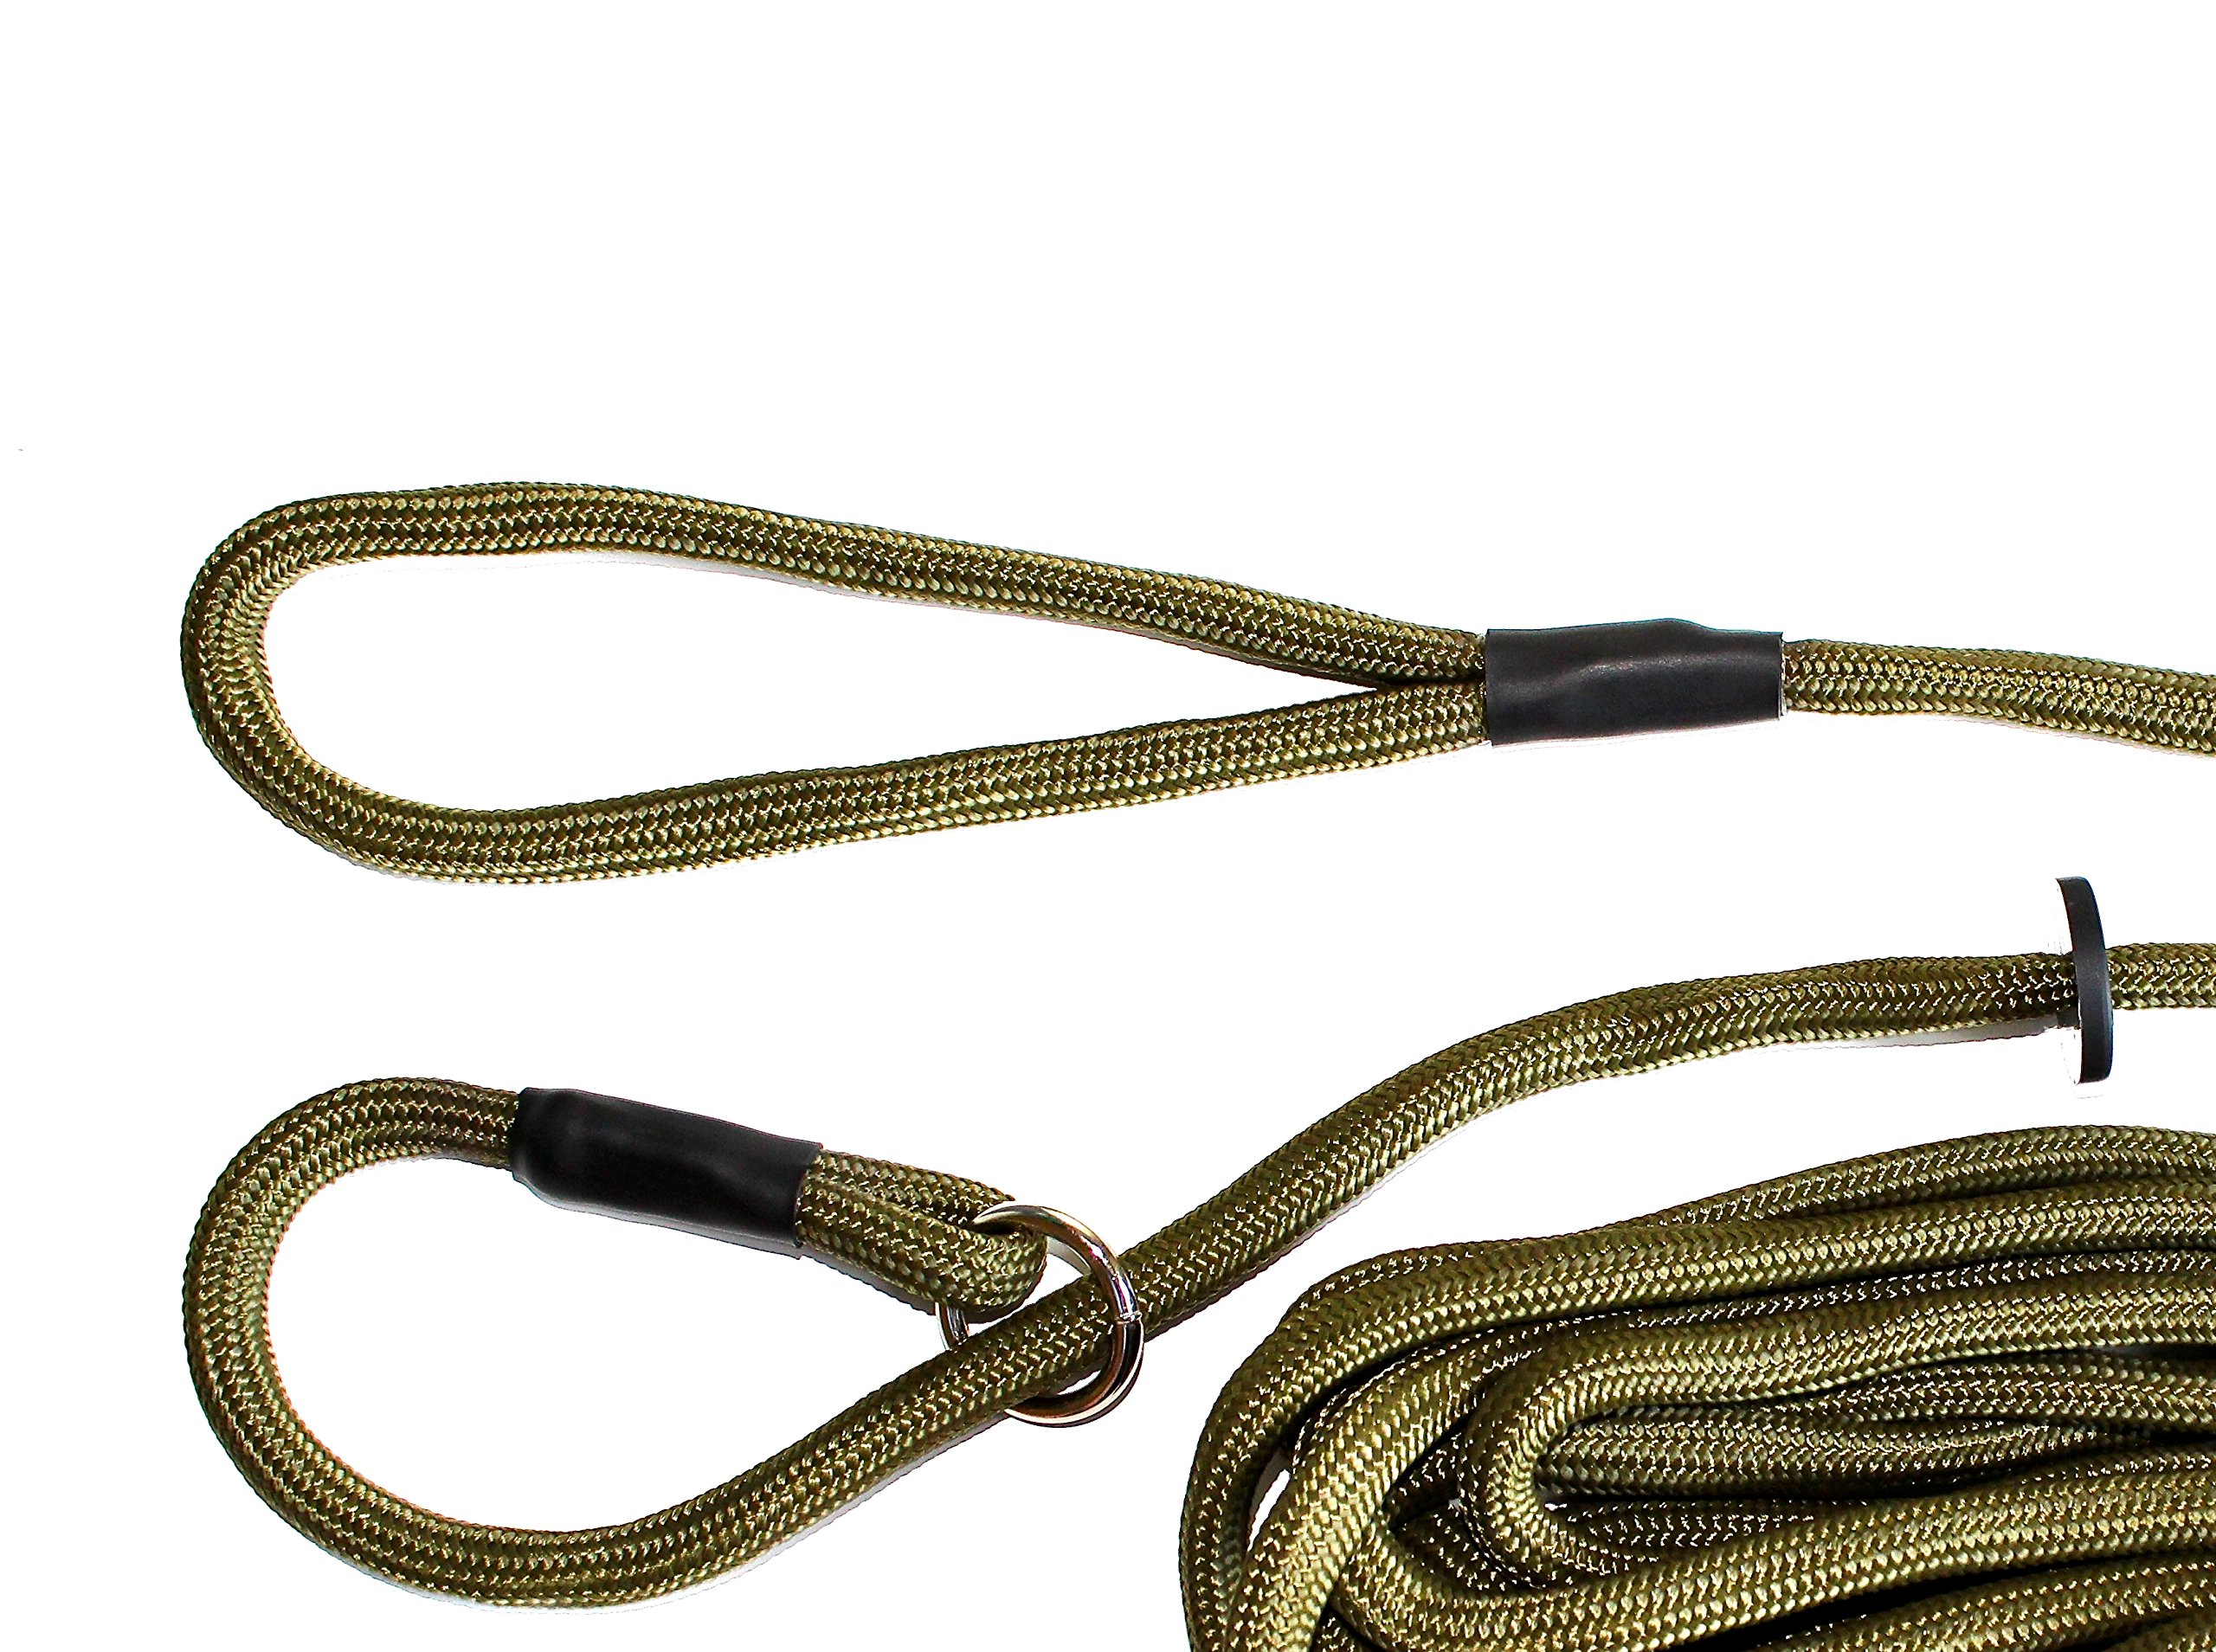 Dog & Field Training Lead - 20 Ft Long Training/Exercise Lead - Soft Braided Nylon by Dog & Field